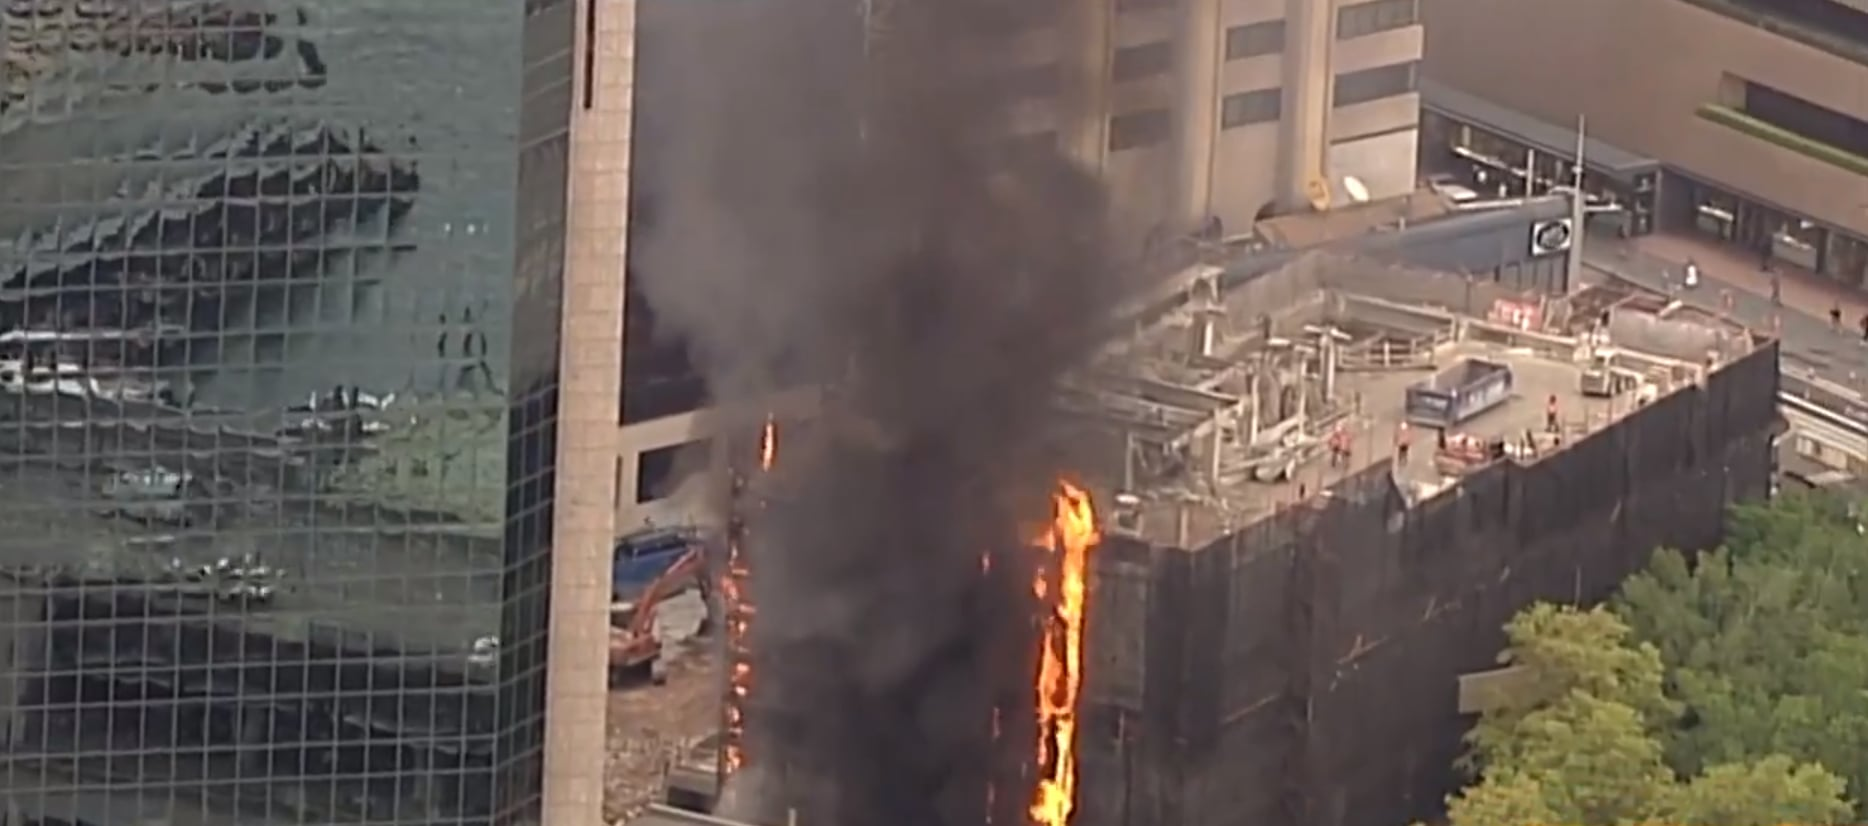 A Huge Fire Has Broken Out At A Construction Site At The Circular Quay End Of Pitt St In Sydney This Morning The Fire Started On The Eastern Side Of The